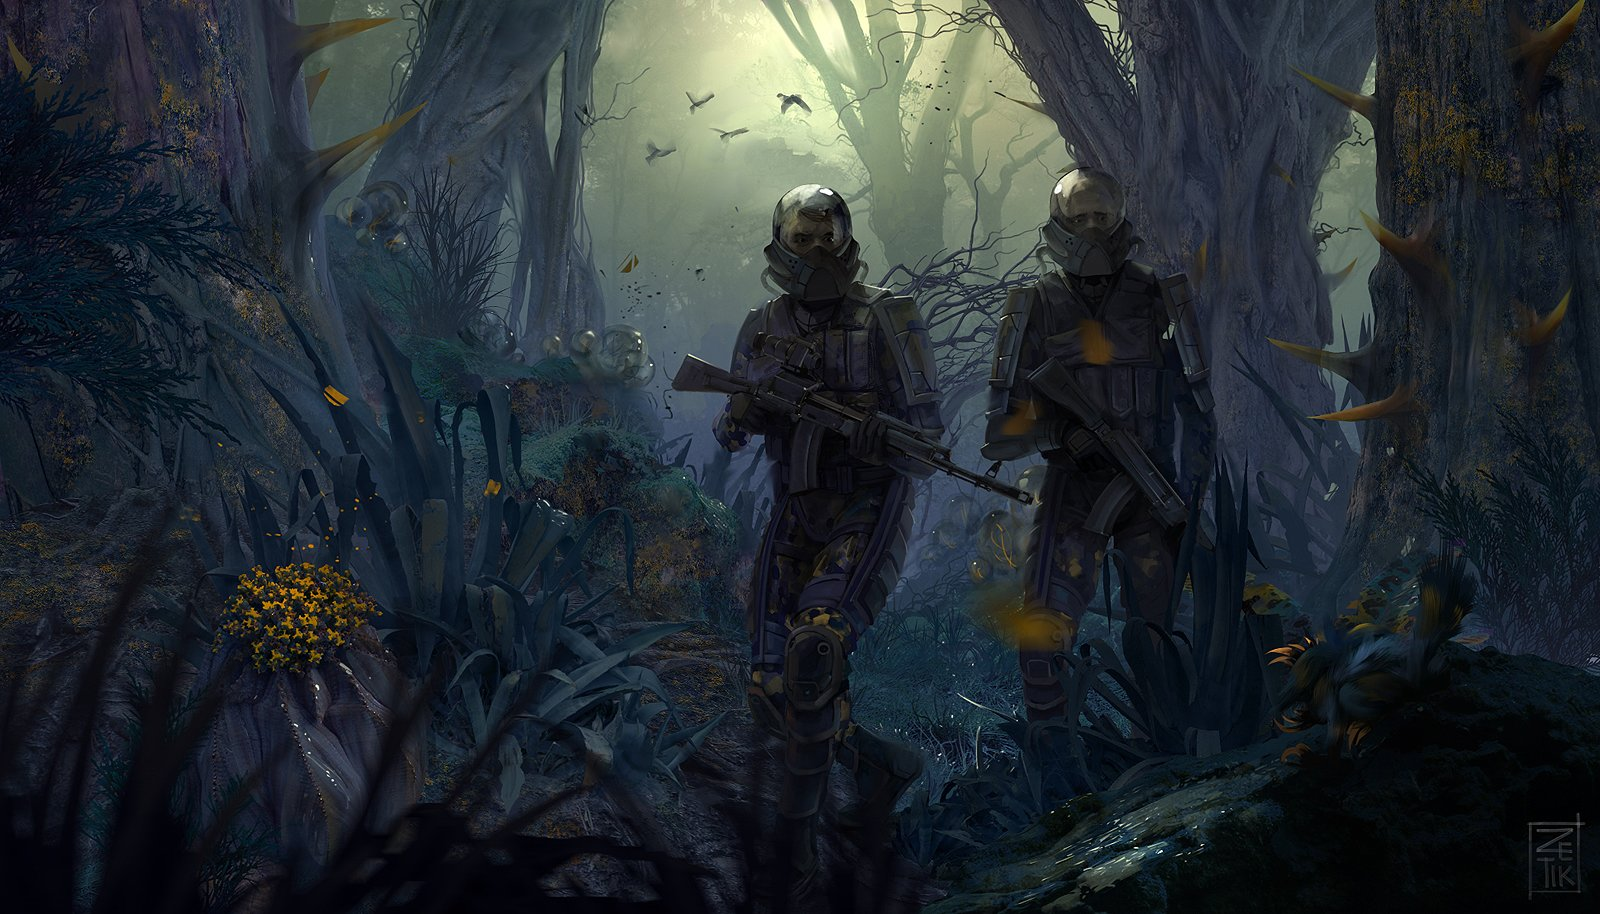 Areal from the creators of S.T.A.L.K.E.R, Kickstarter campaign launching on 26 June